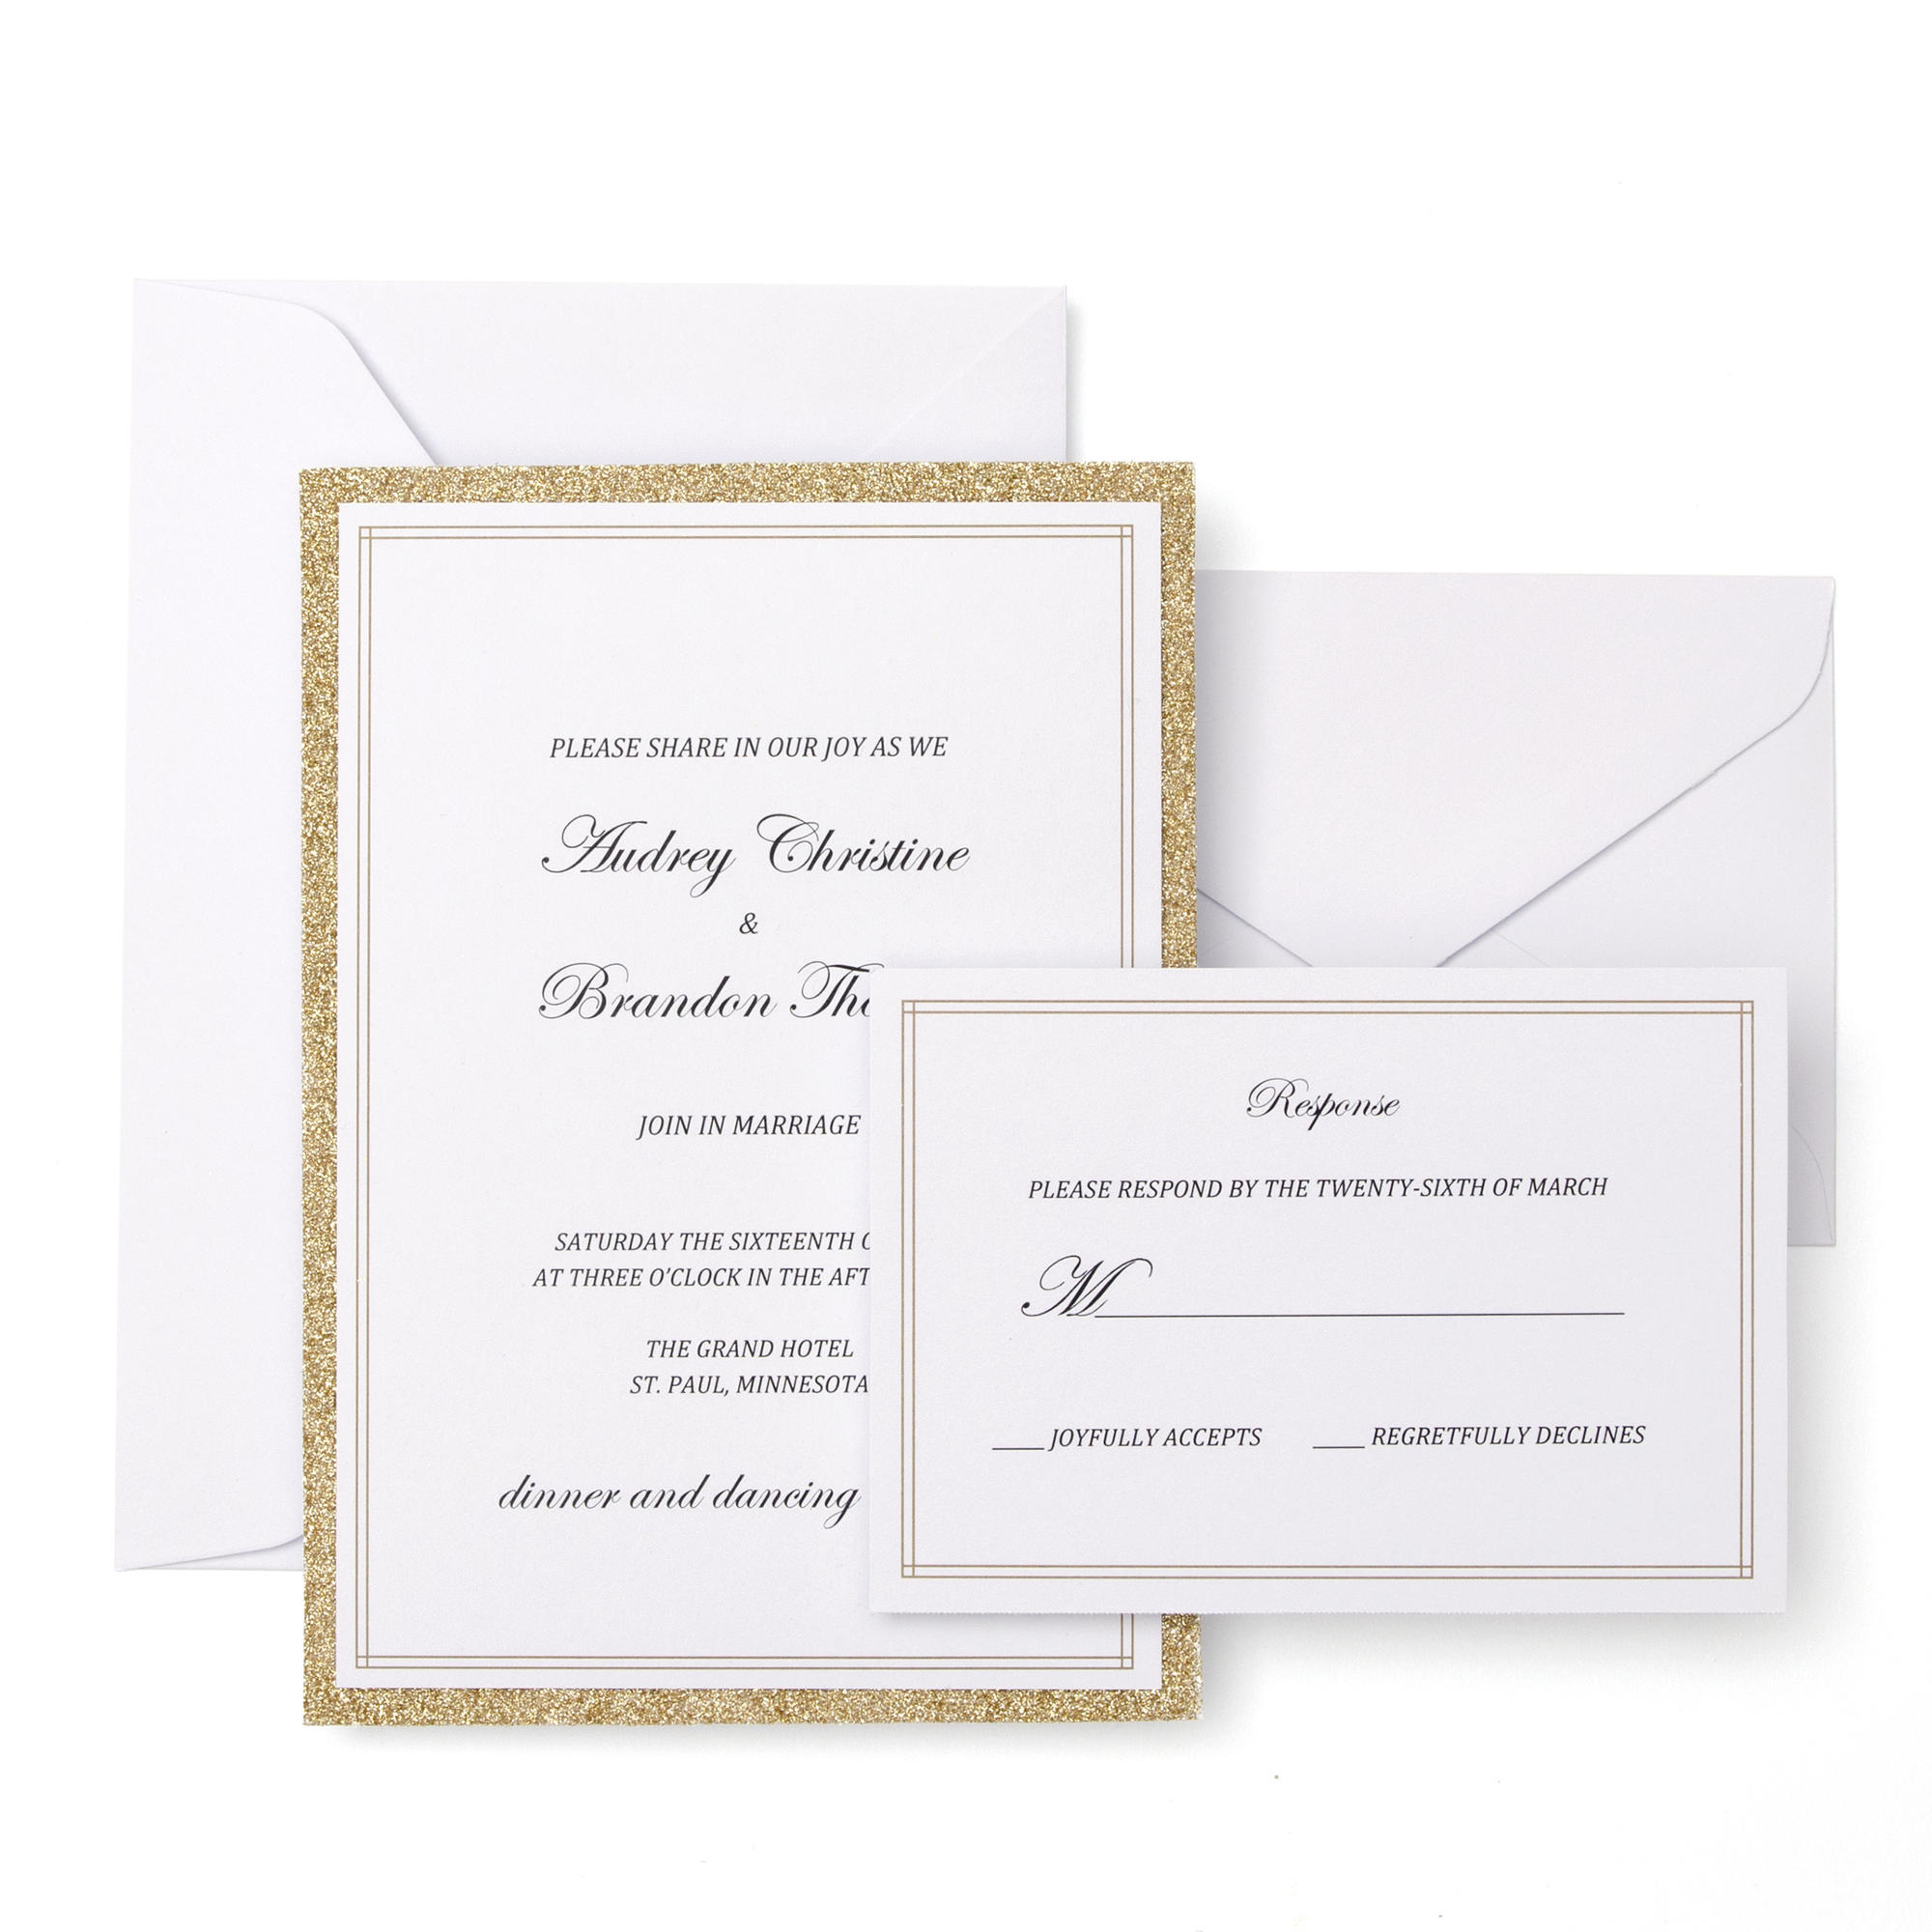 Print your own invitation kits best red glitter for Glitter wedding invitations walmart